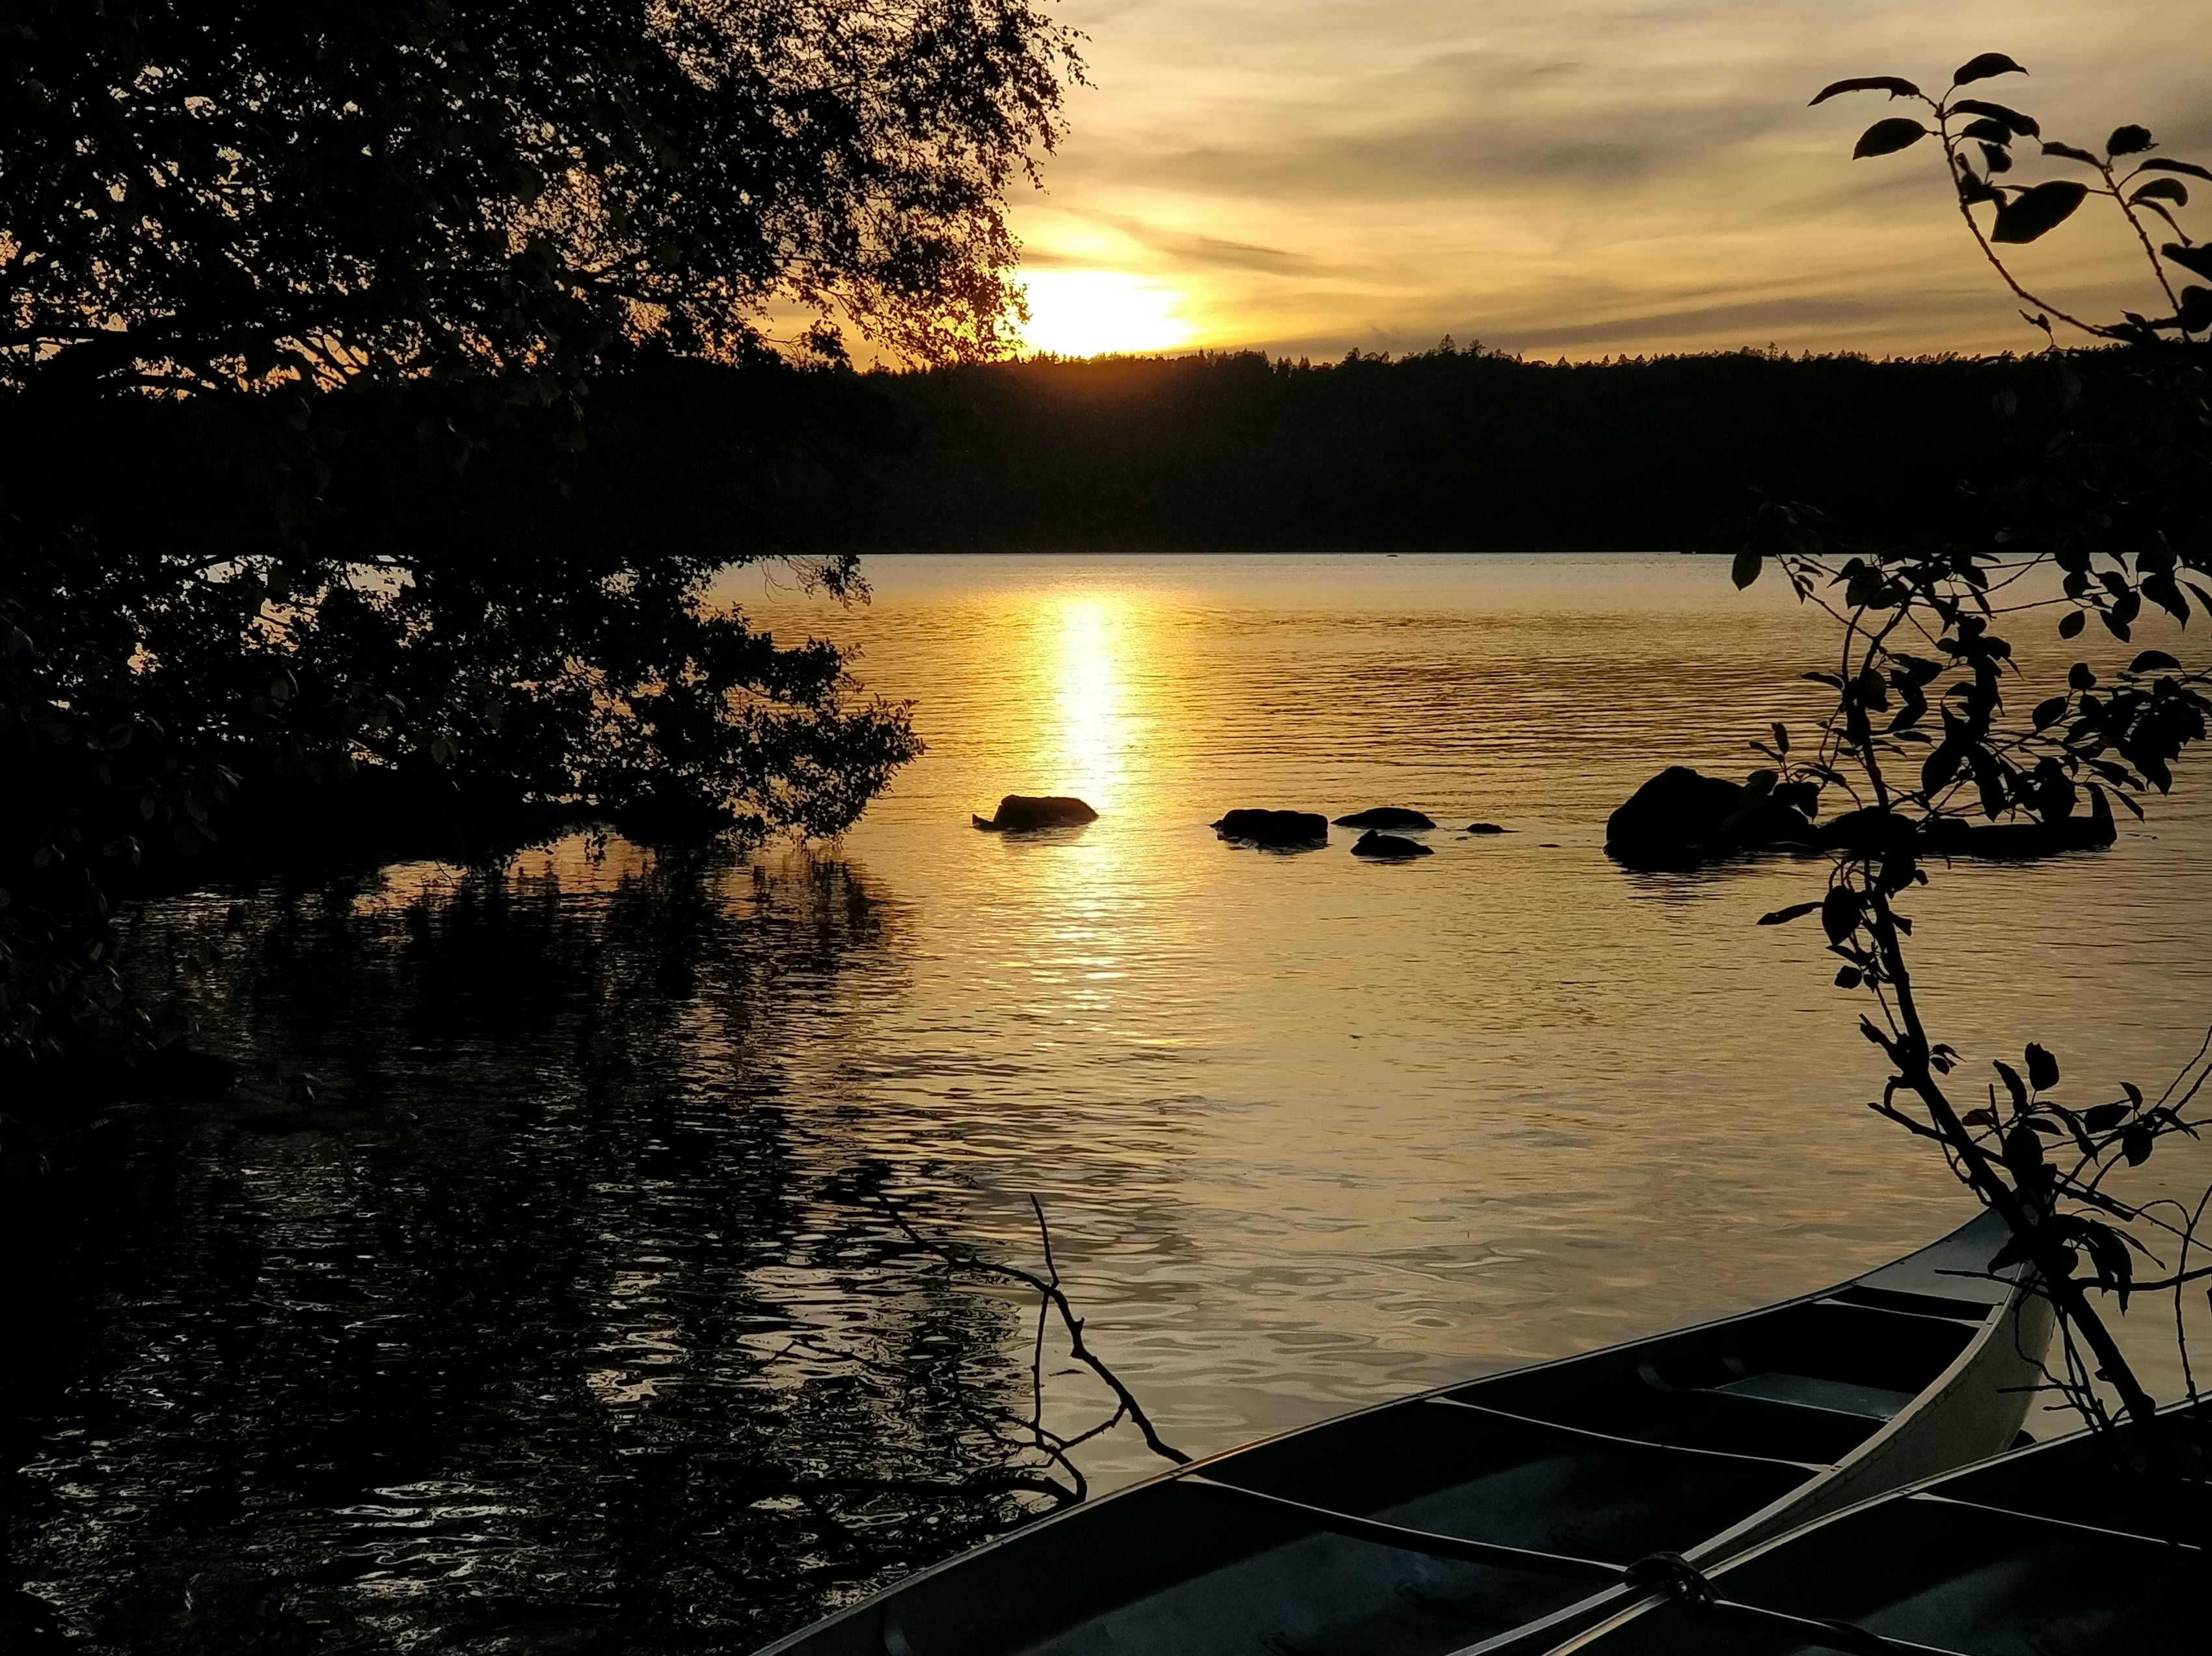 Sunset Sweden with canoes.jpg